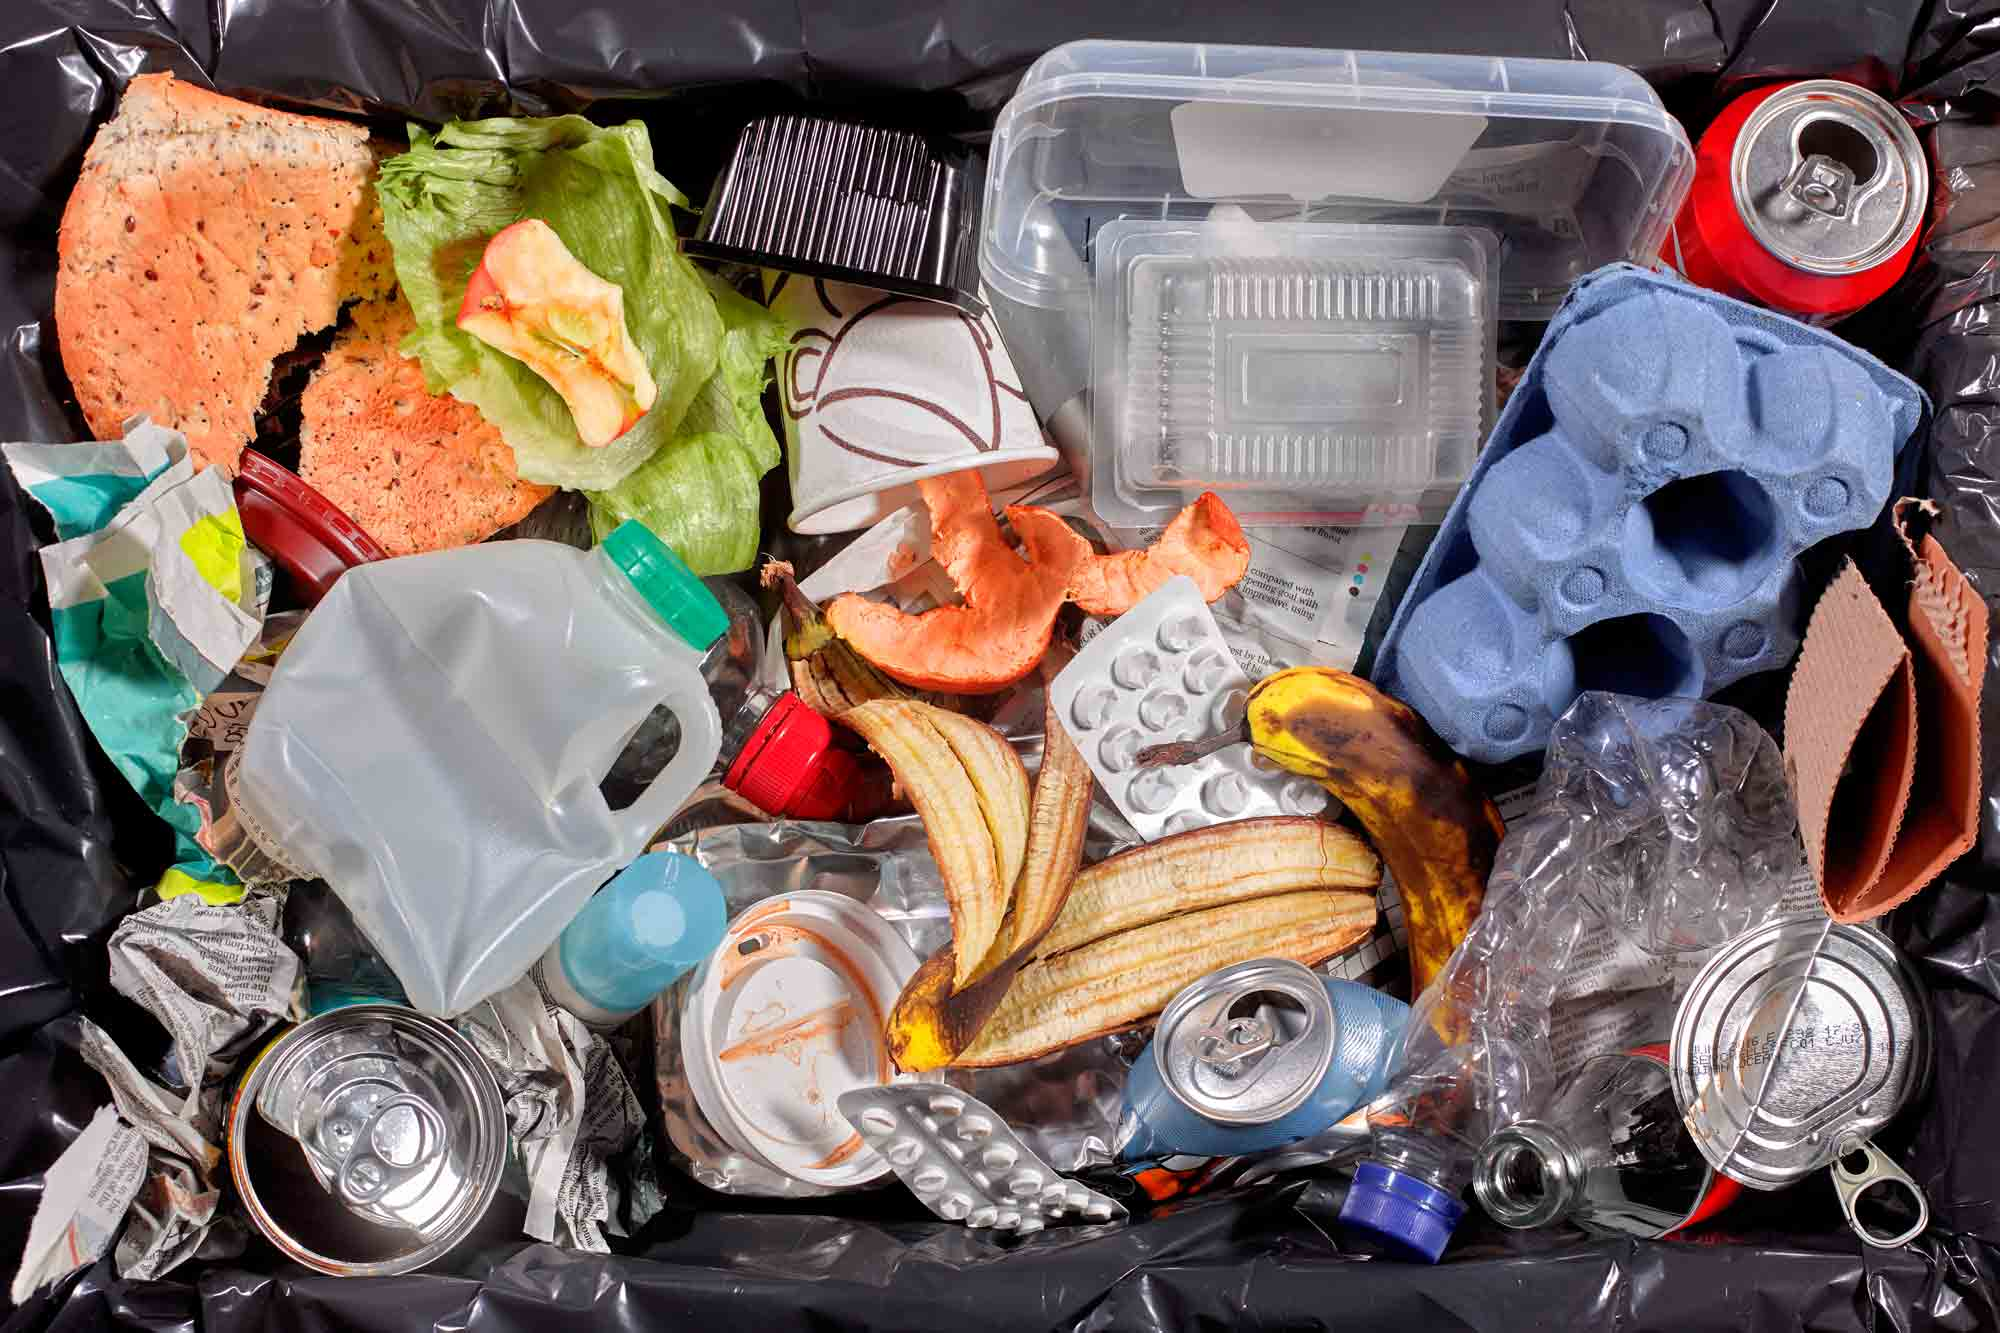 Vermont Bans Food Waste In Trash and Requires Composting